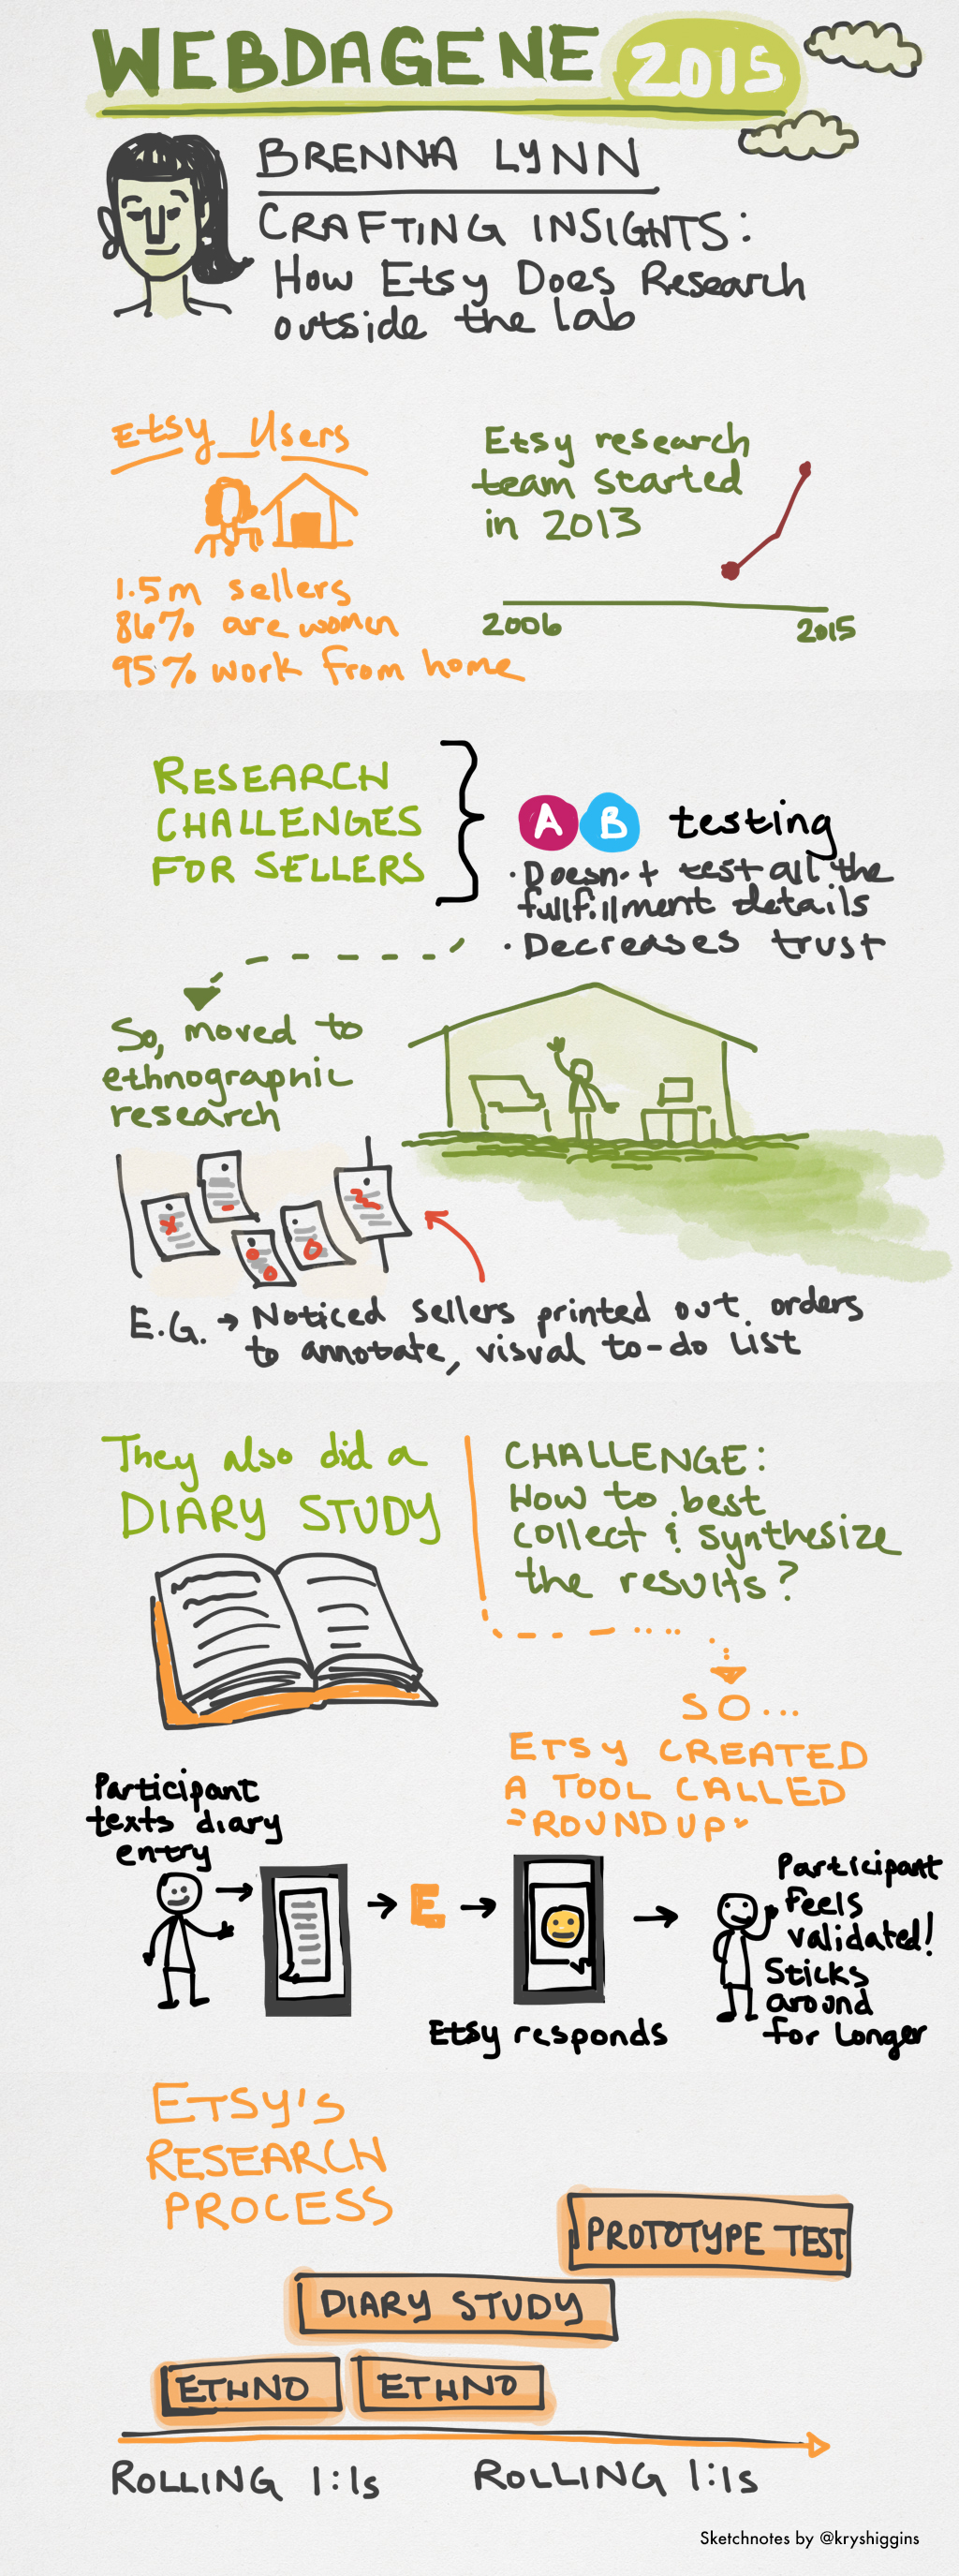 Sketchnotes from Crafting Insights